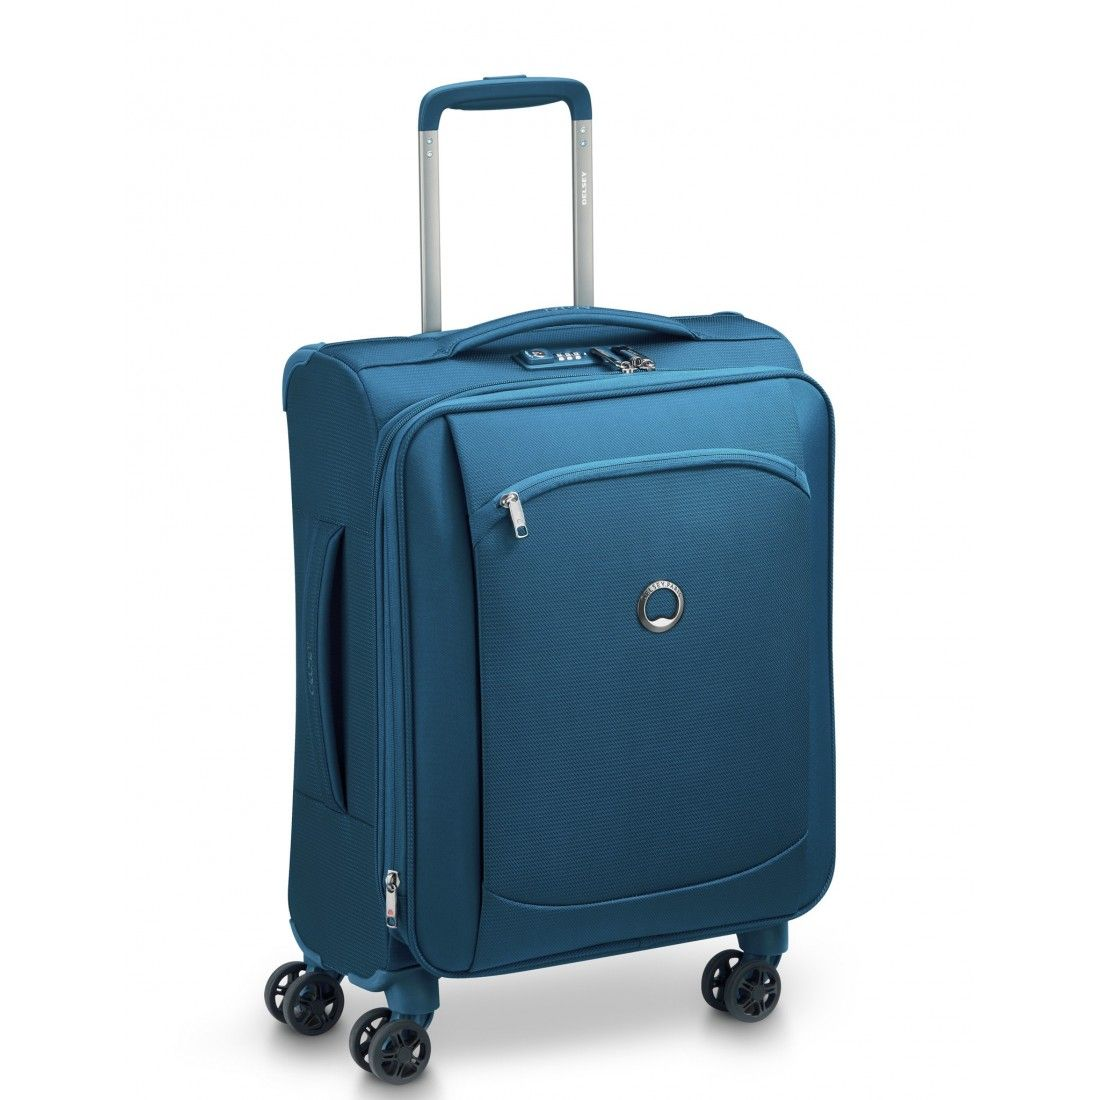 Delsey Montmartre Air Recycled | maleta azul